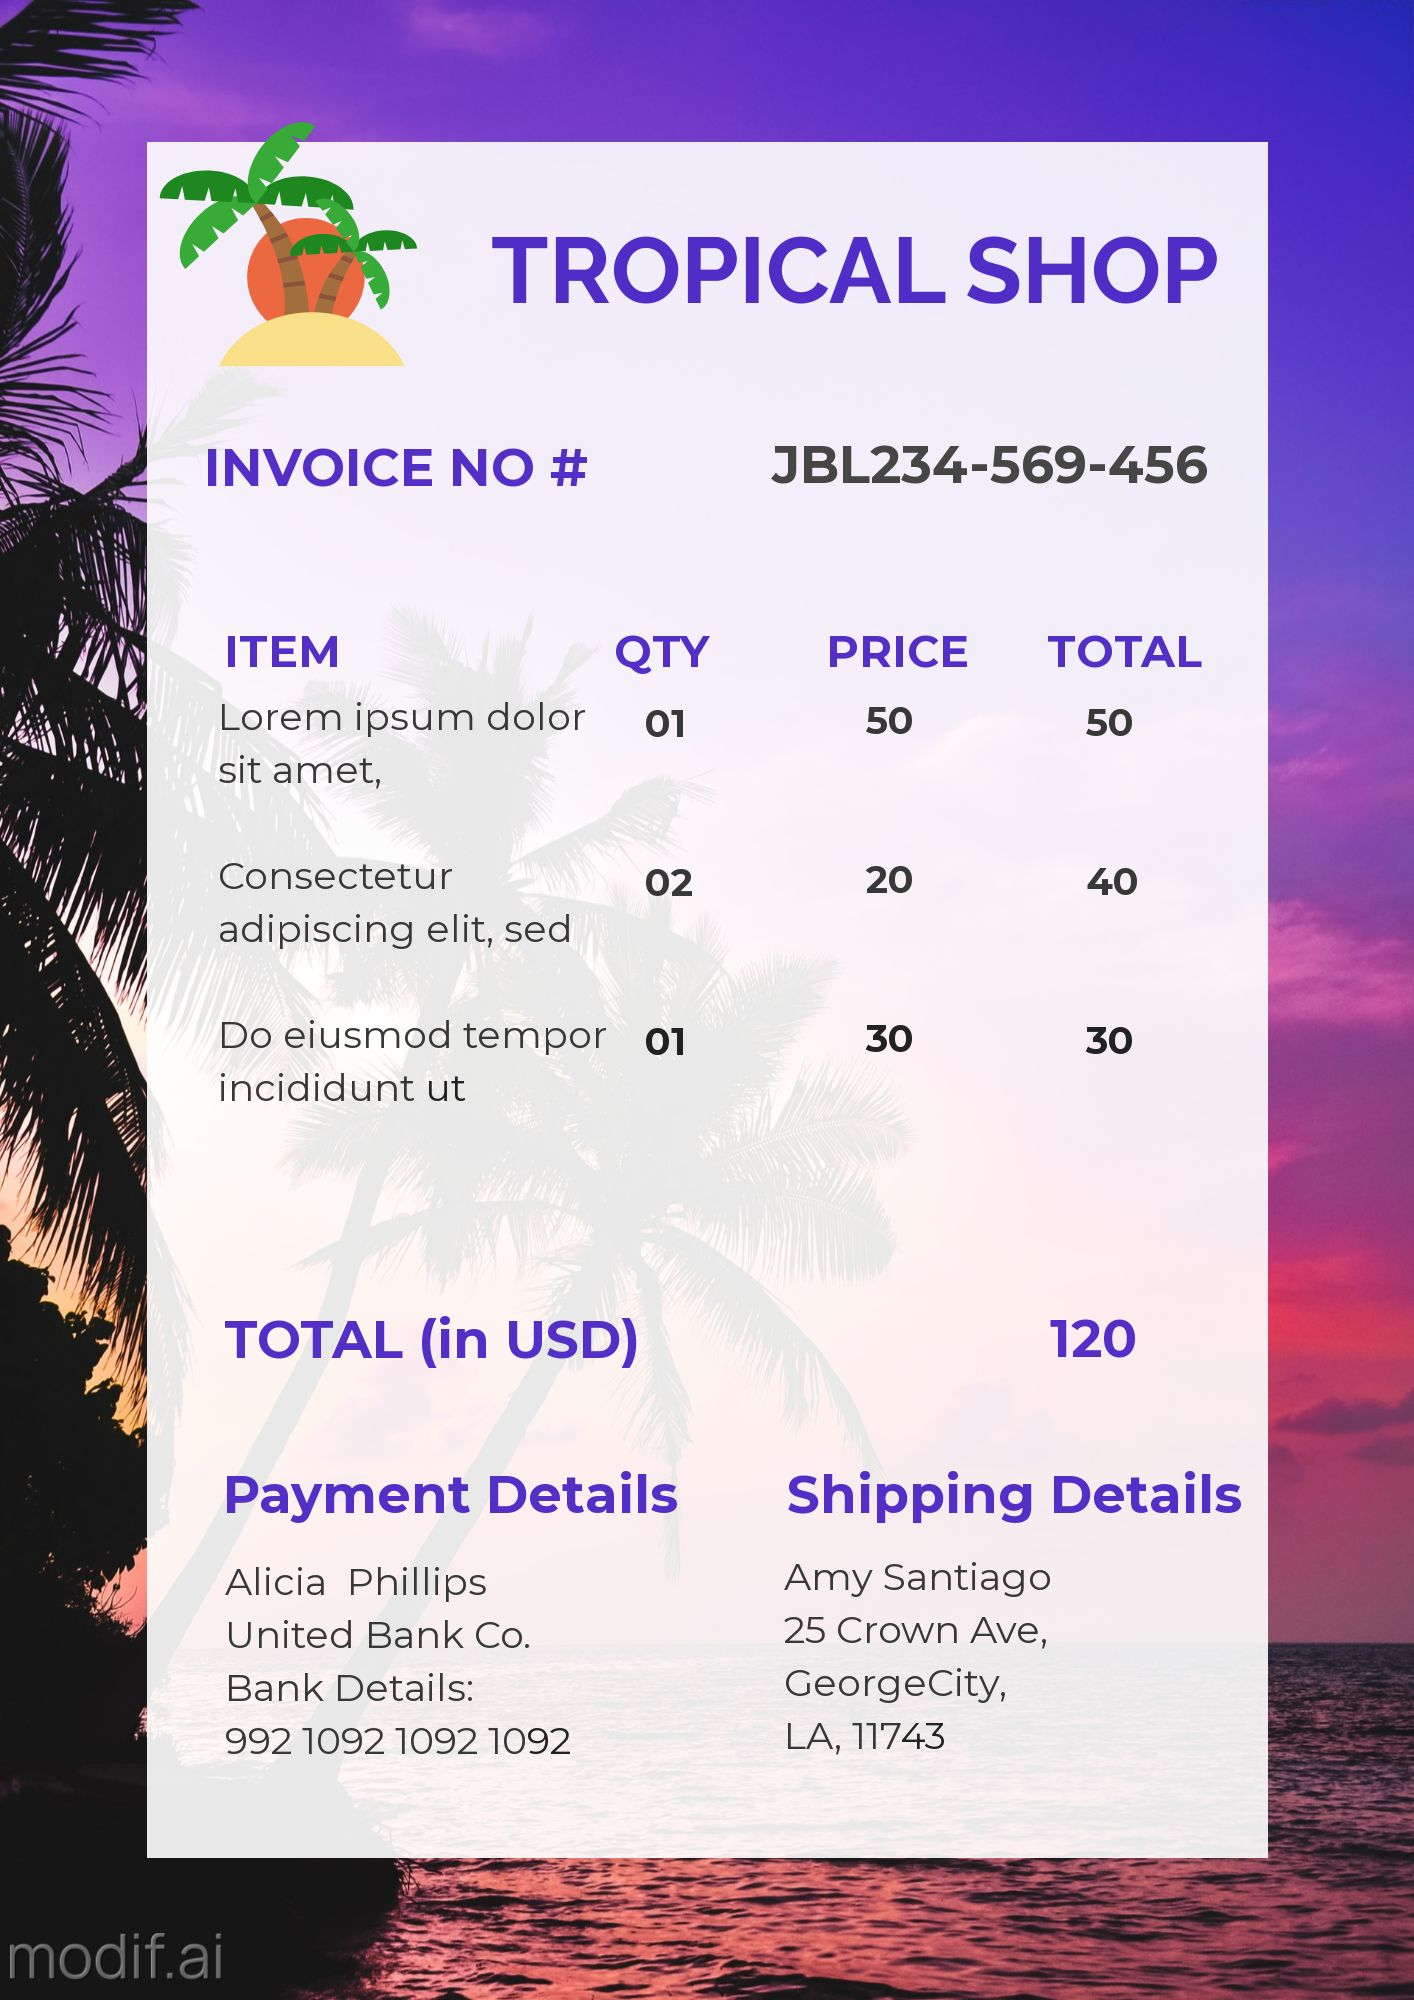 Invoice Template for Tropical Business Service